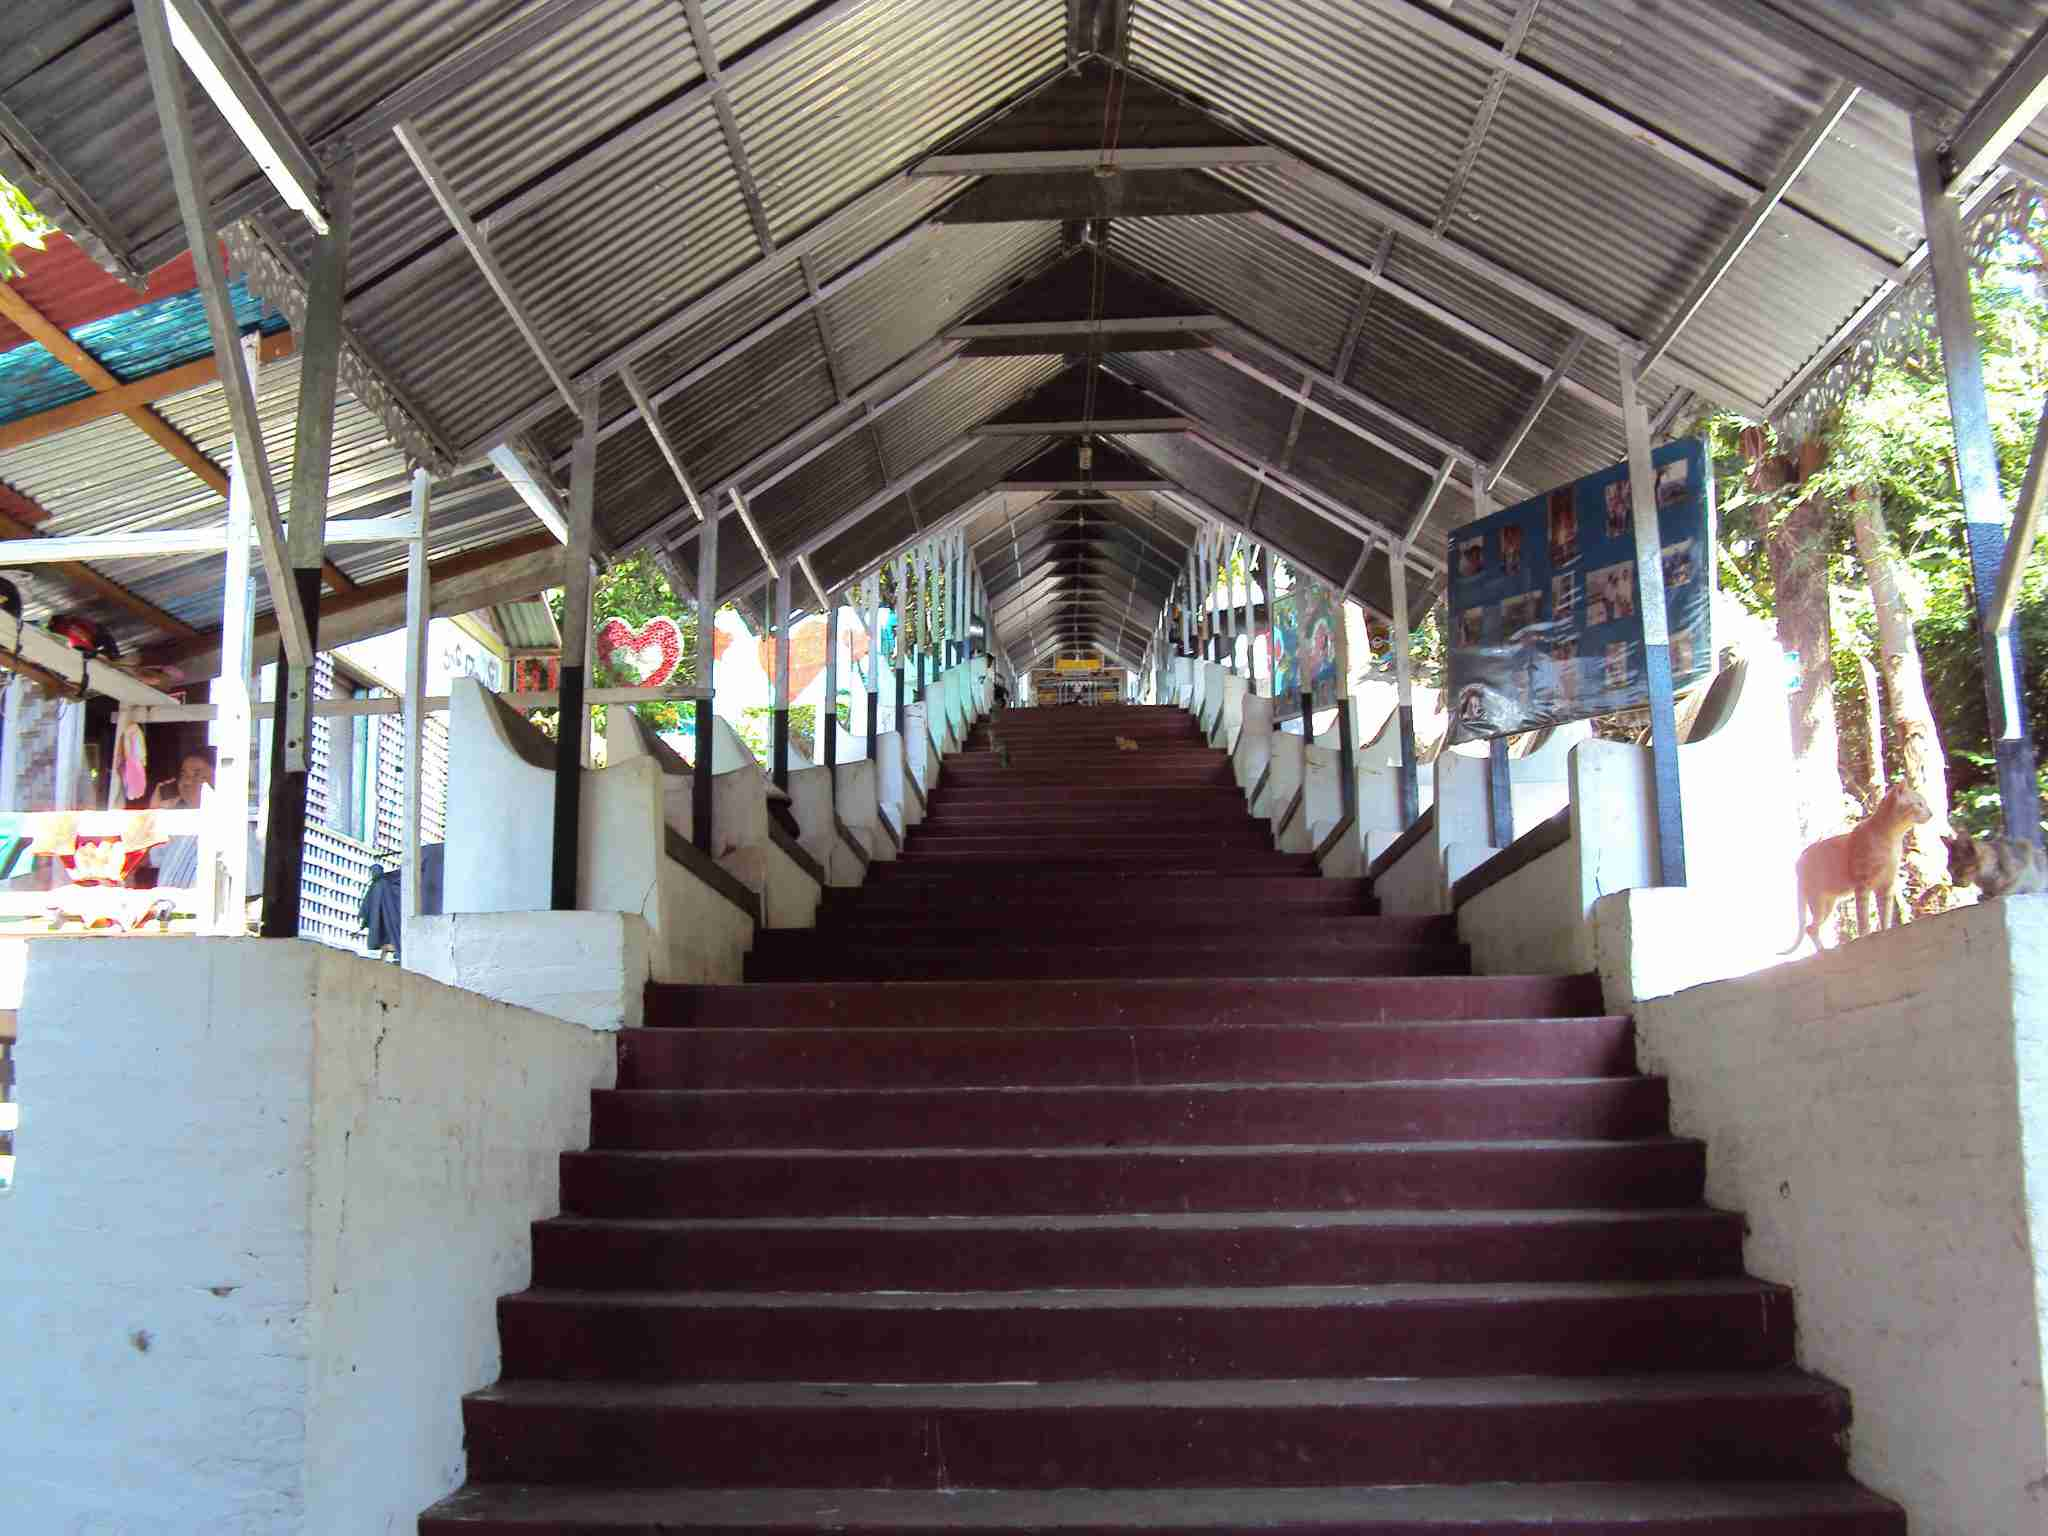 Stairs to hill